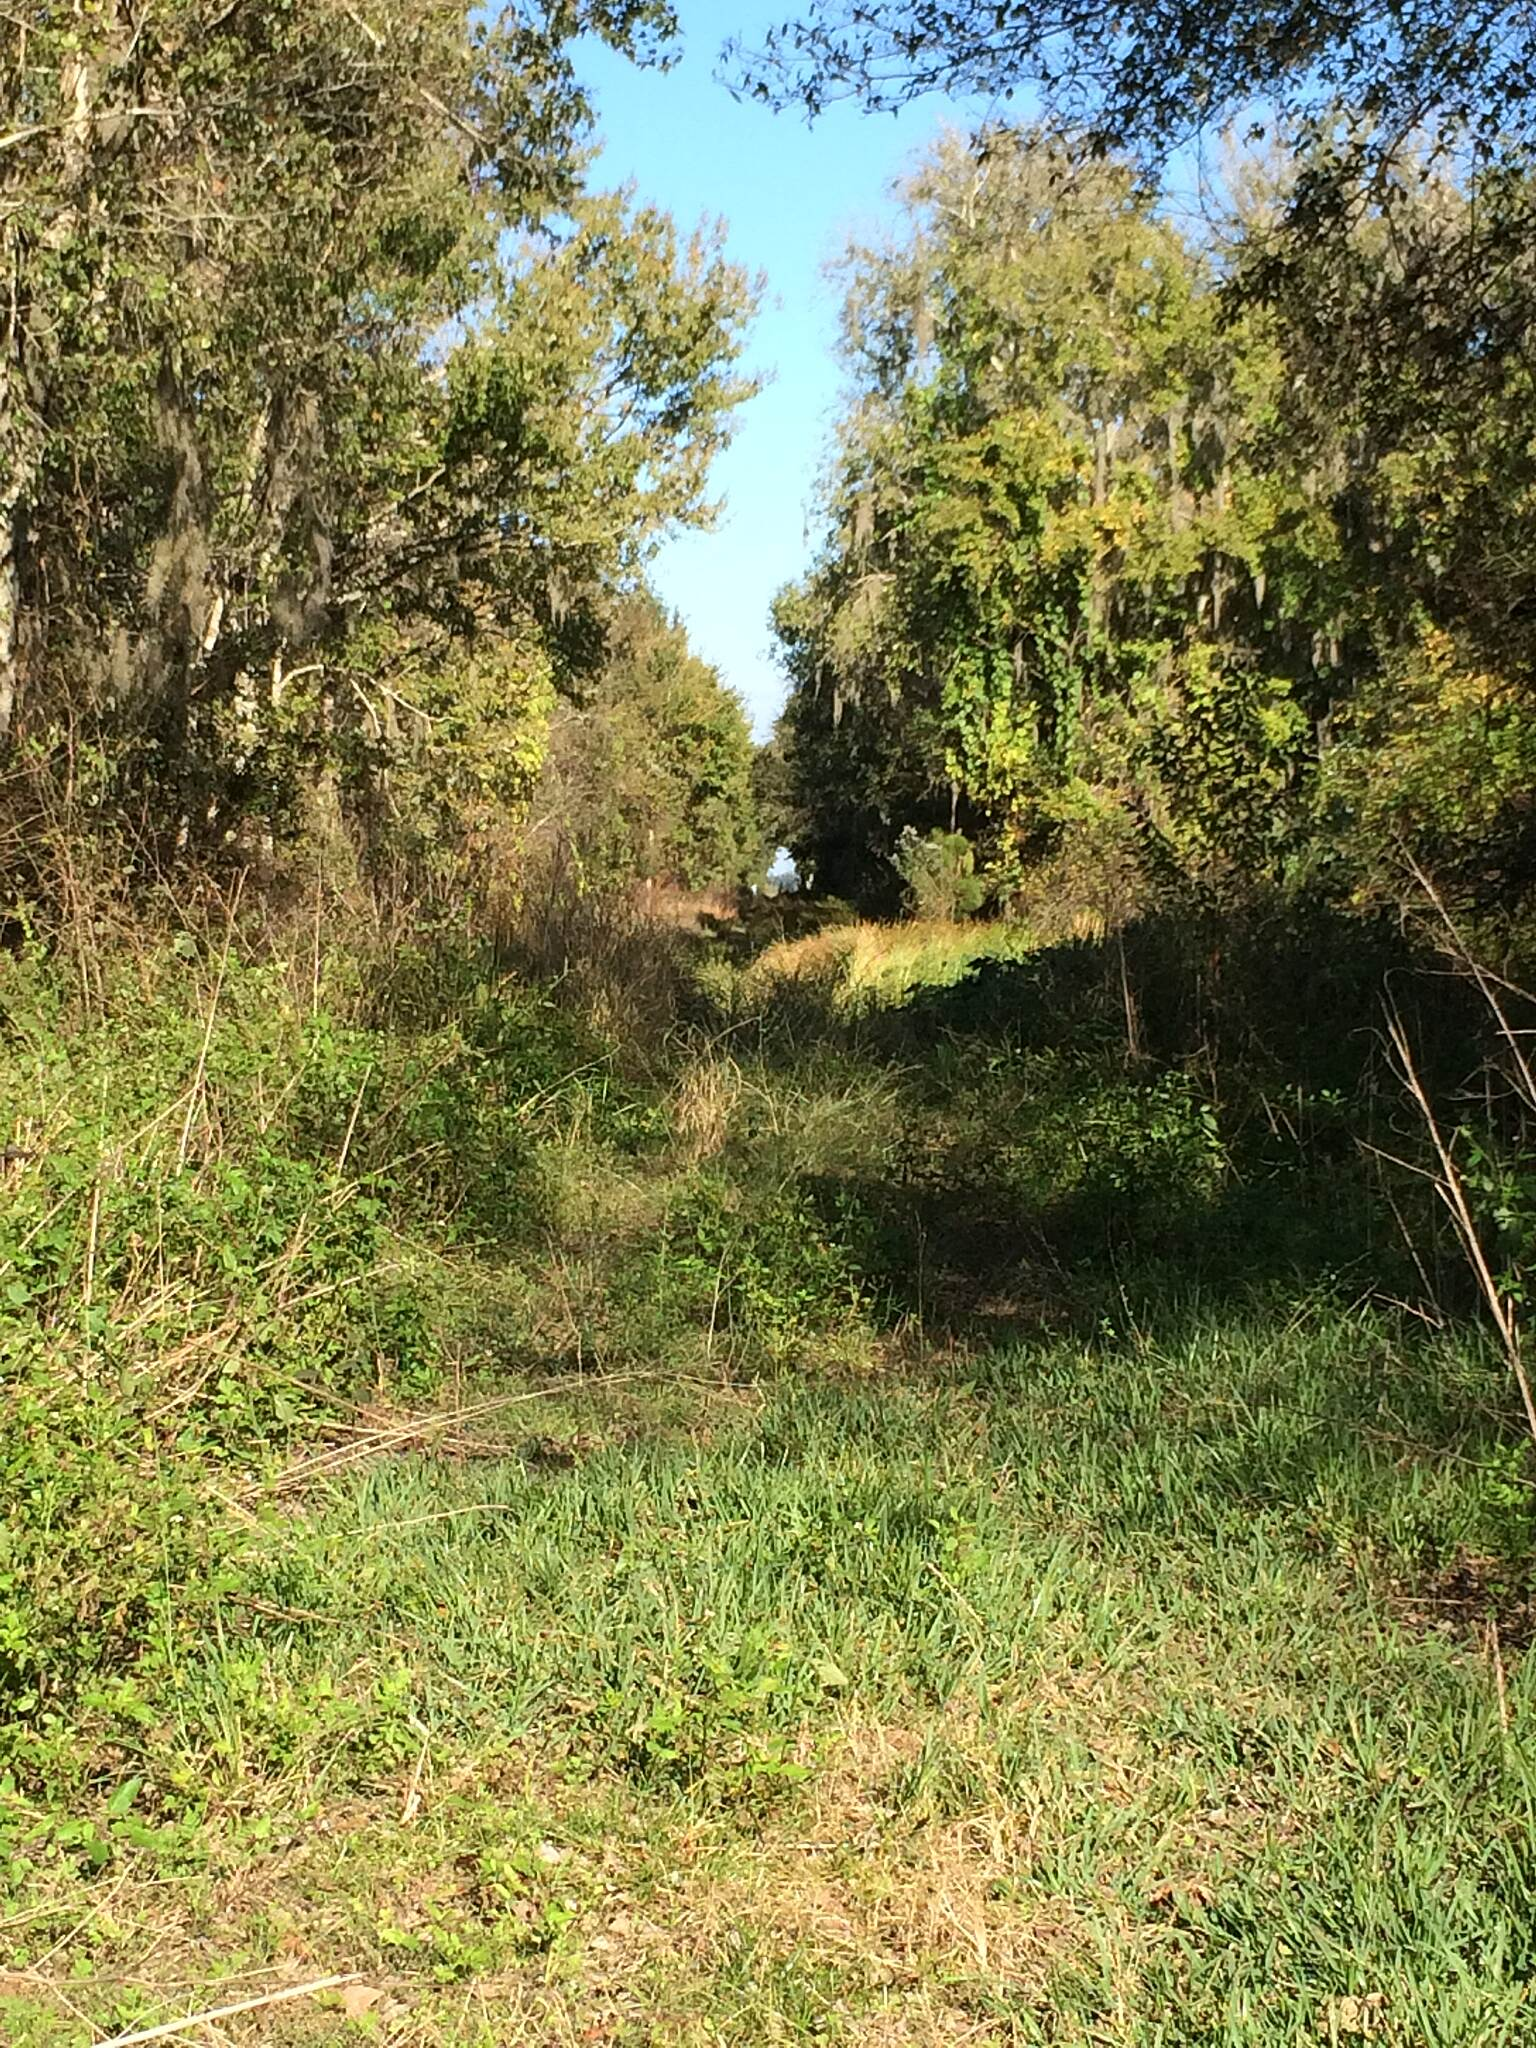 Palatka-to-St. Augustine State Trail Future part of trail. A shot of the future trail as is passes by the Deep Creek Conservation Area (Edgefield storm water treatment area). When the trail is paved by here people will have the opportunity to hike or bike and explore the area. Between East Palatka & Hastings.